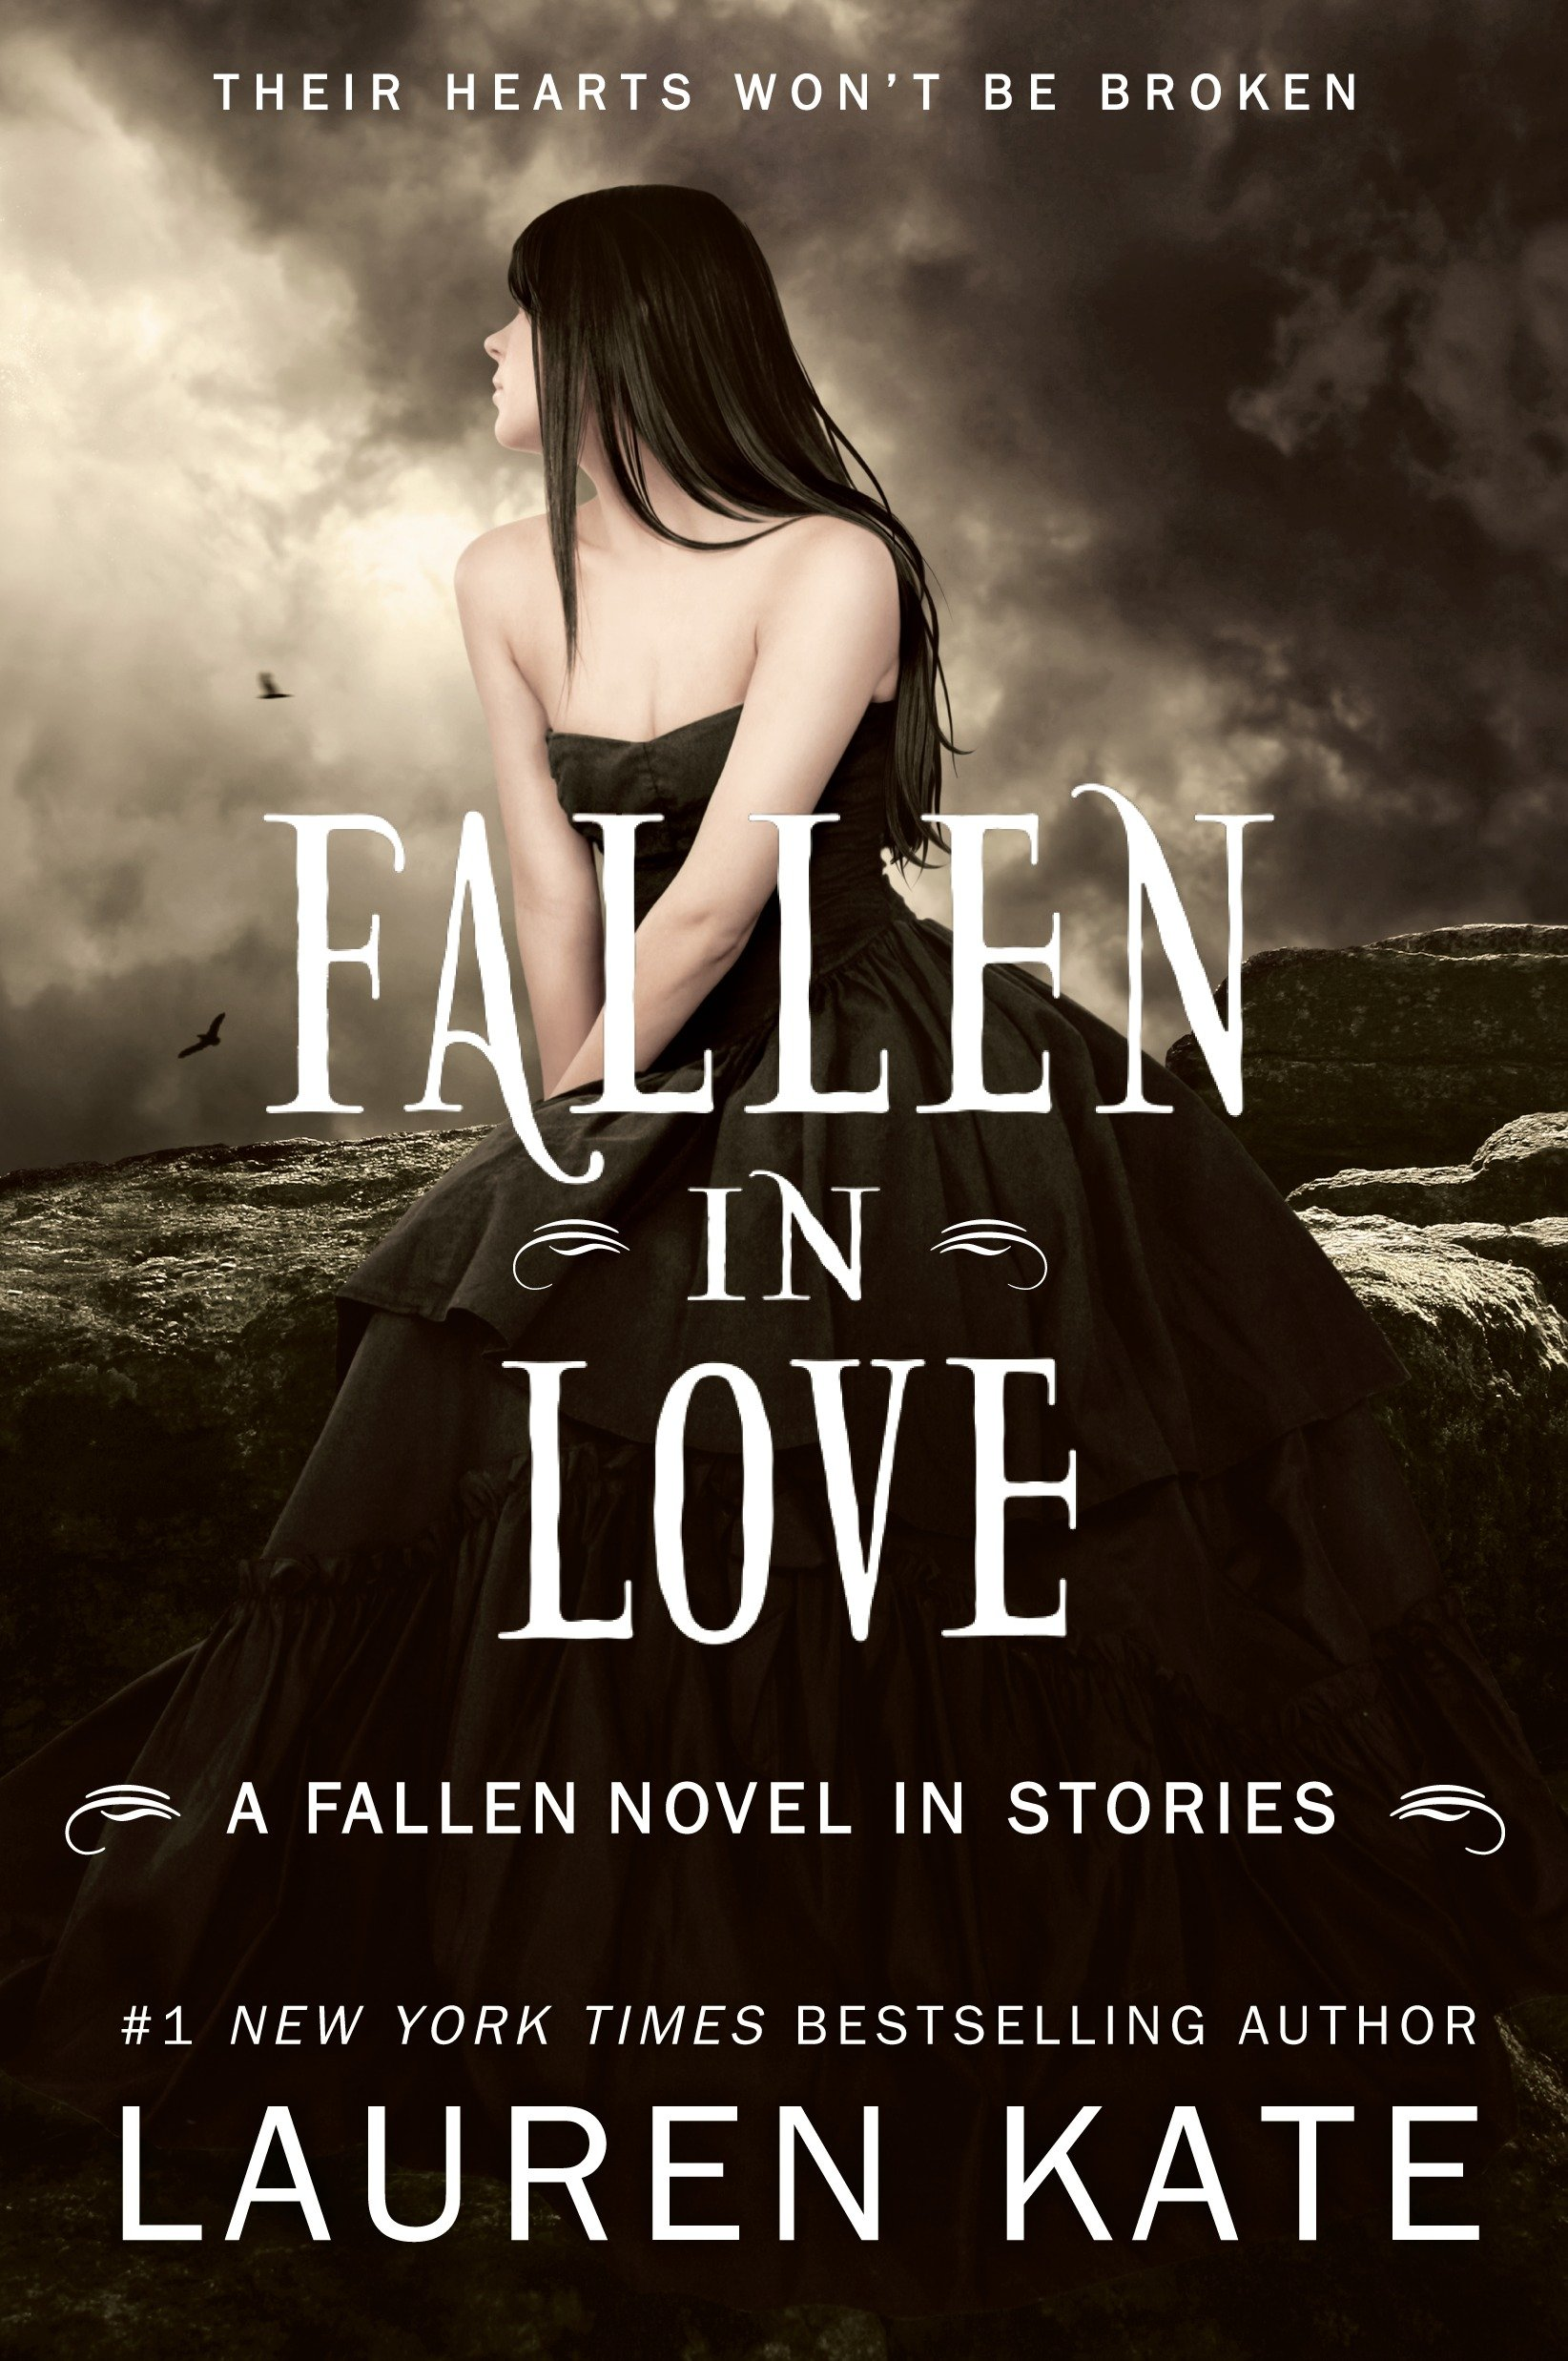 Fallen in love a fallen novel in stories cover image